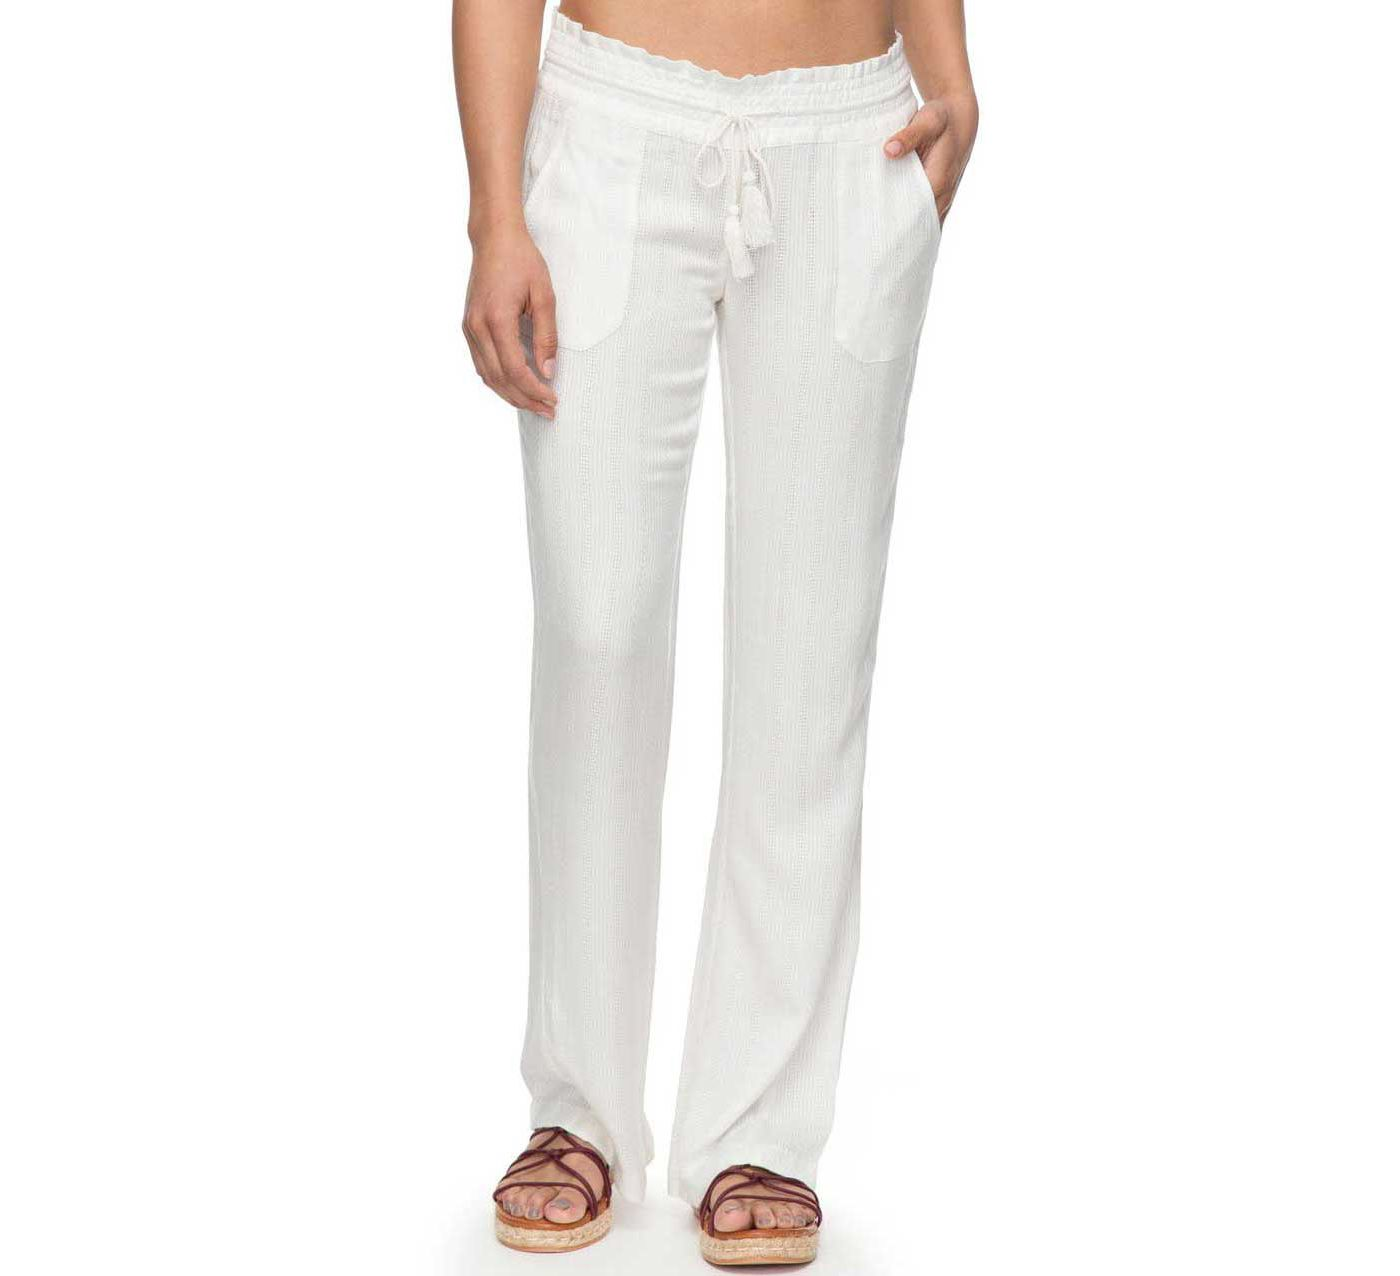 Roxy Women's Oceanside Vicose Pant